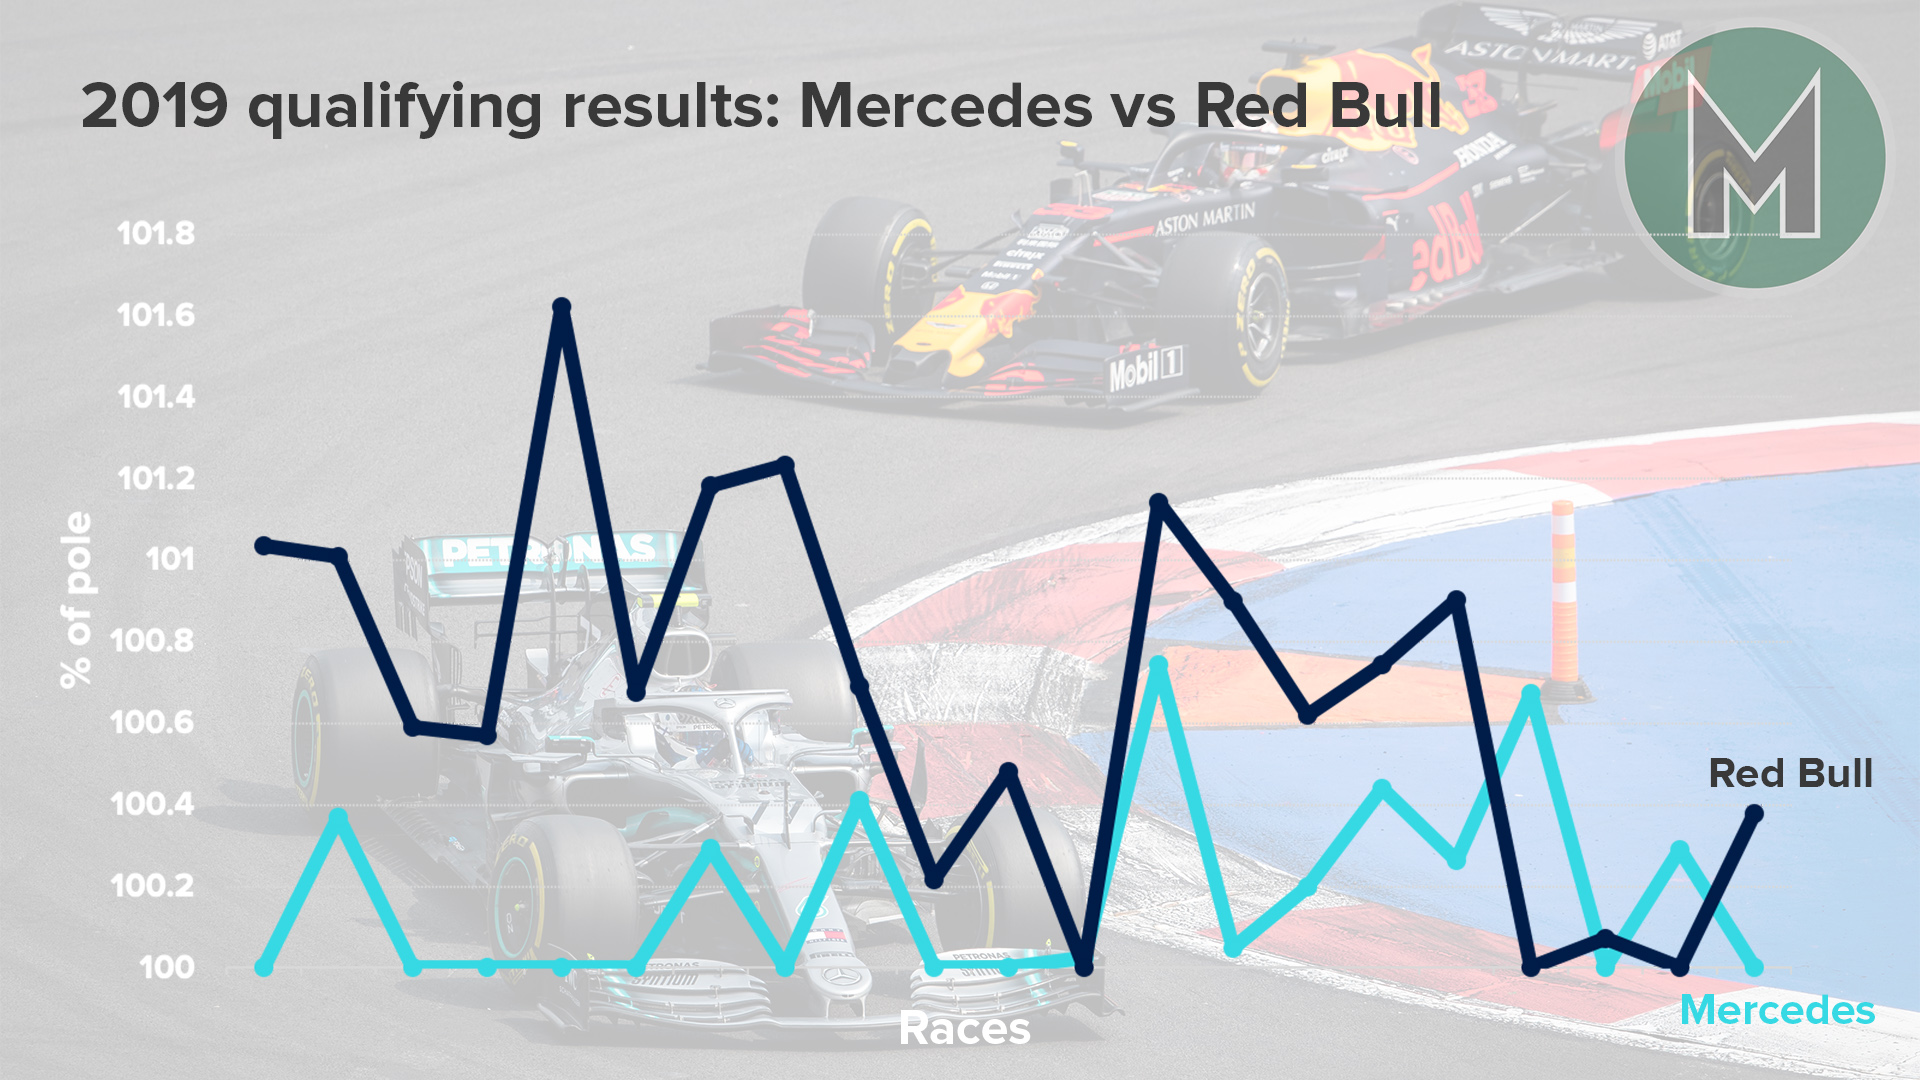 Graph showing Mercedes and Red Bull F1 qualifying performance in 2019